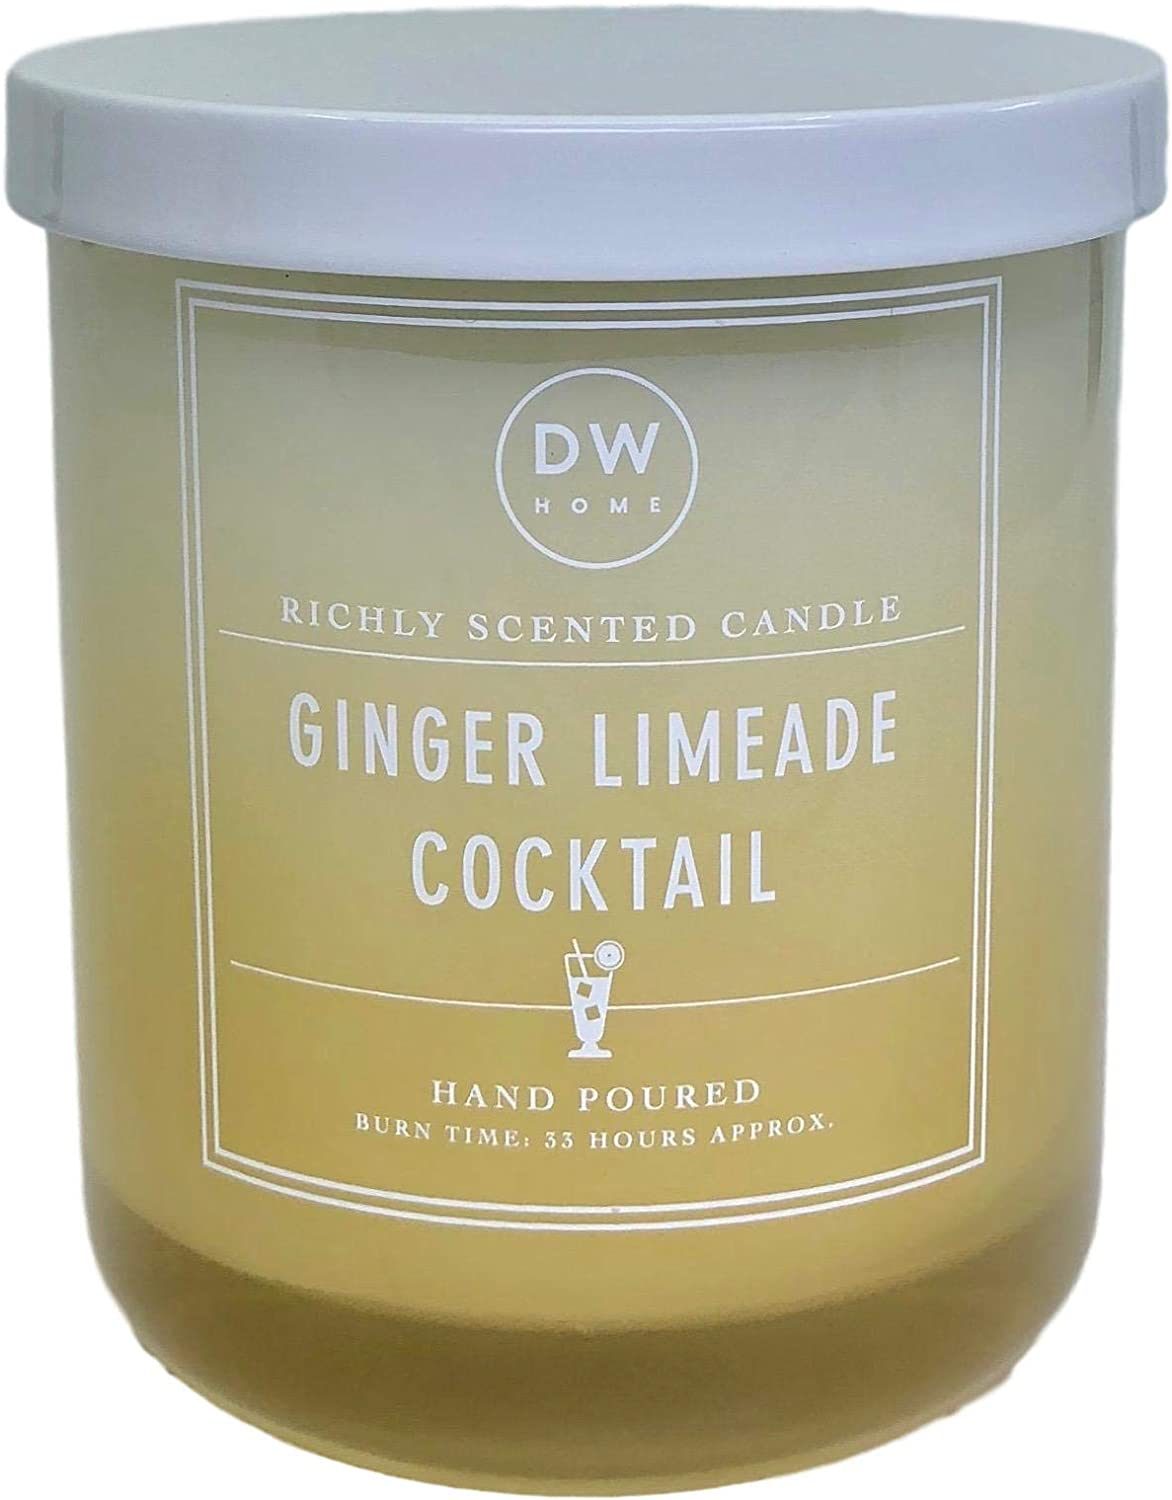 DW Home Ginger Limeade Cocktail Scented Candle